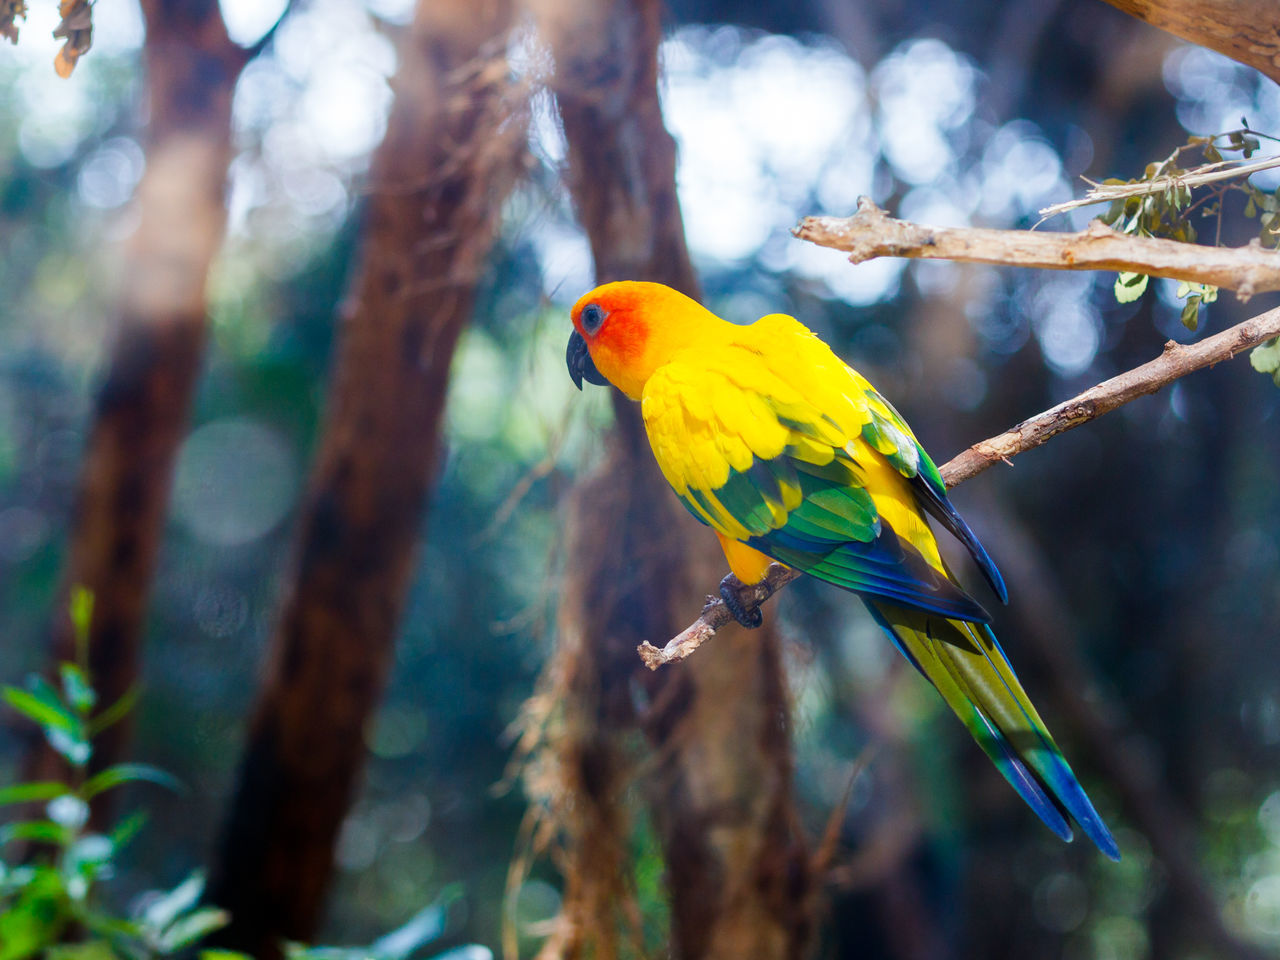 Sun Conure - Aratinga Solistalis - is sits on a tree branch Animal Themes Animals In The Wild Aratinga Background Beak Beak Beautiful Beauty In Nature Bird Branch Colorful Conure Exotic Feather  Nature No People One Animal Parrot Pet Sits Solistalis Sun Tree Wildlife Zoology